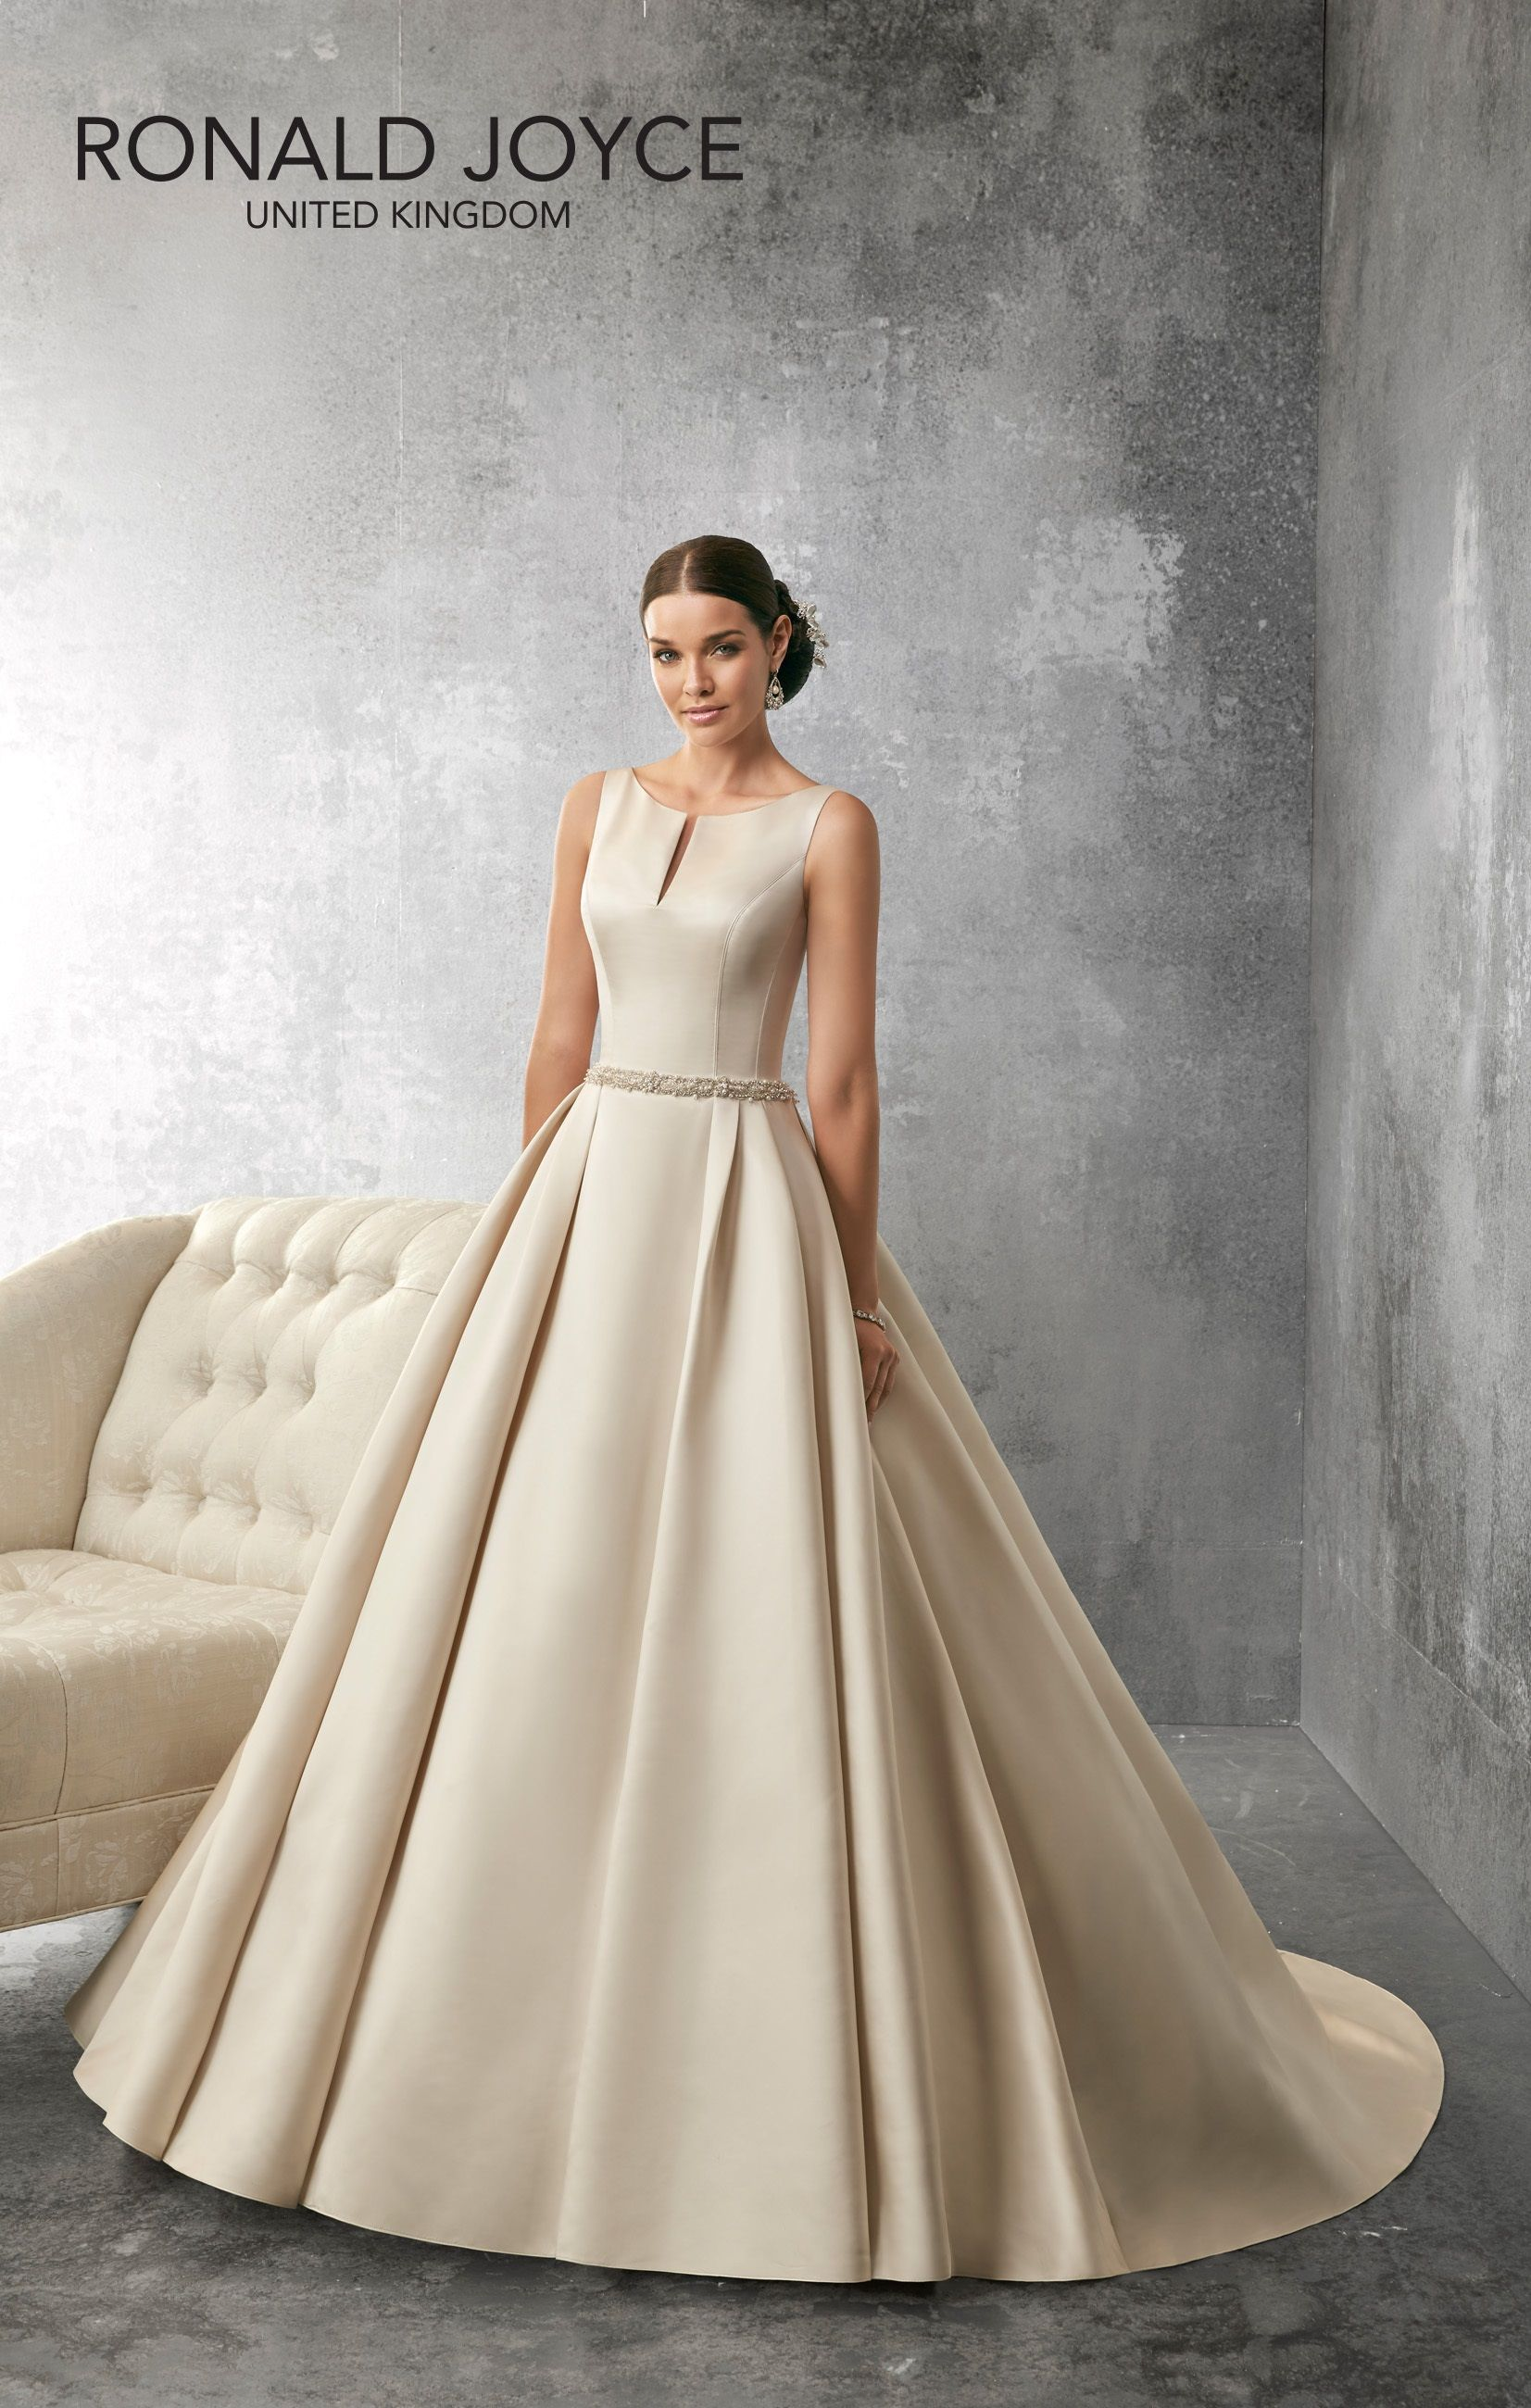 Wedding Dresses And Bridal Gowns Ronald Joyce